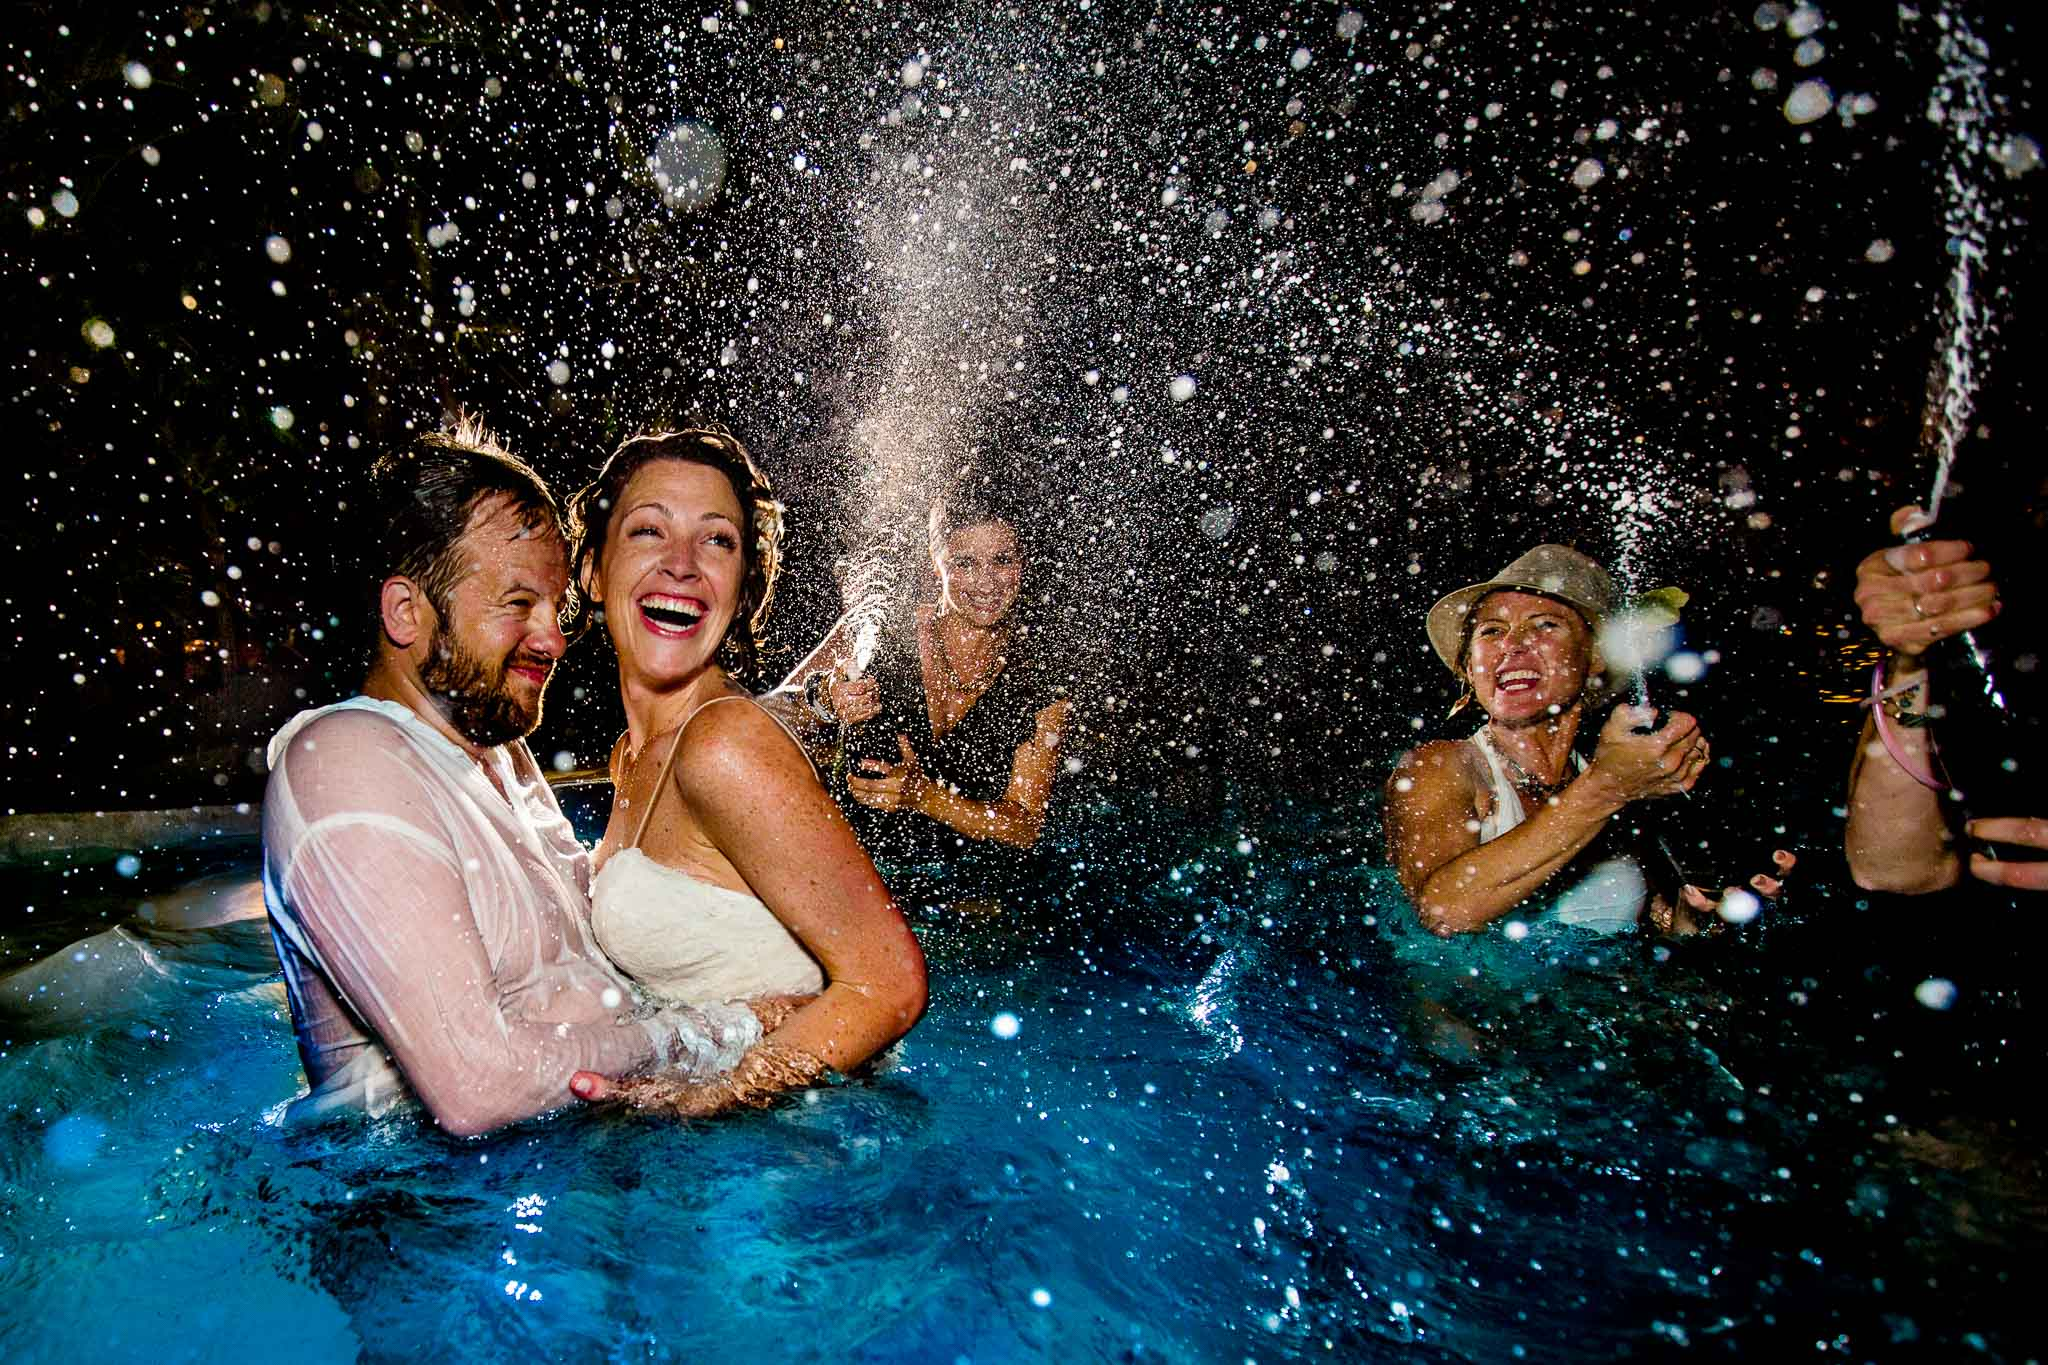 award winning wedding photo champagne in pool with bride and groom